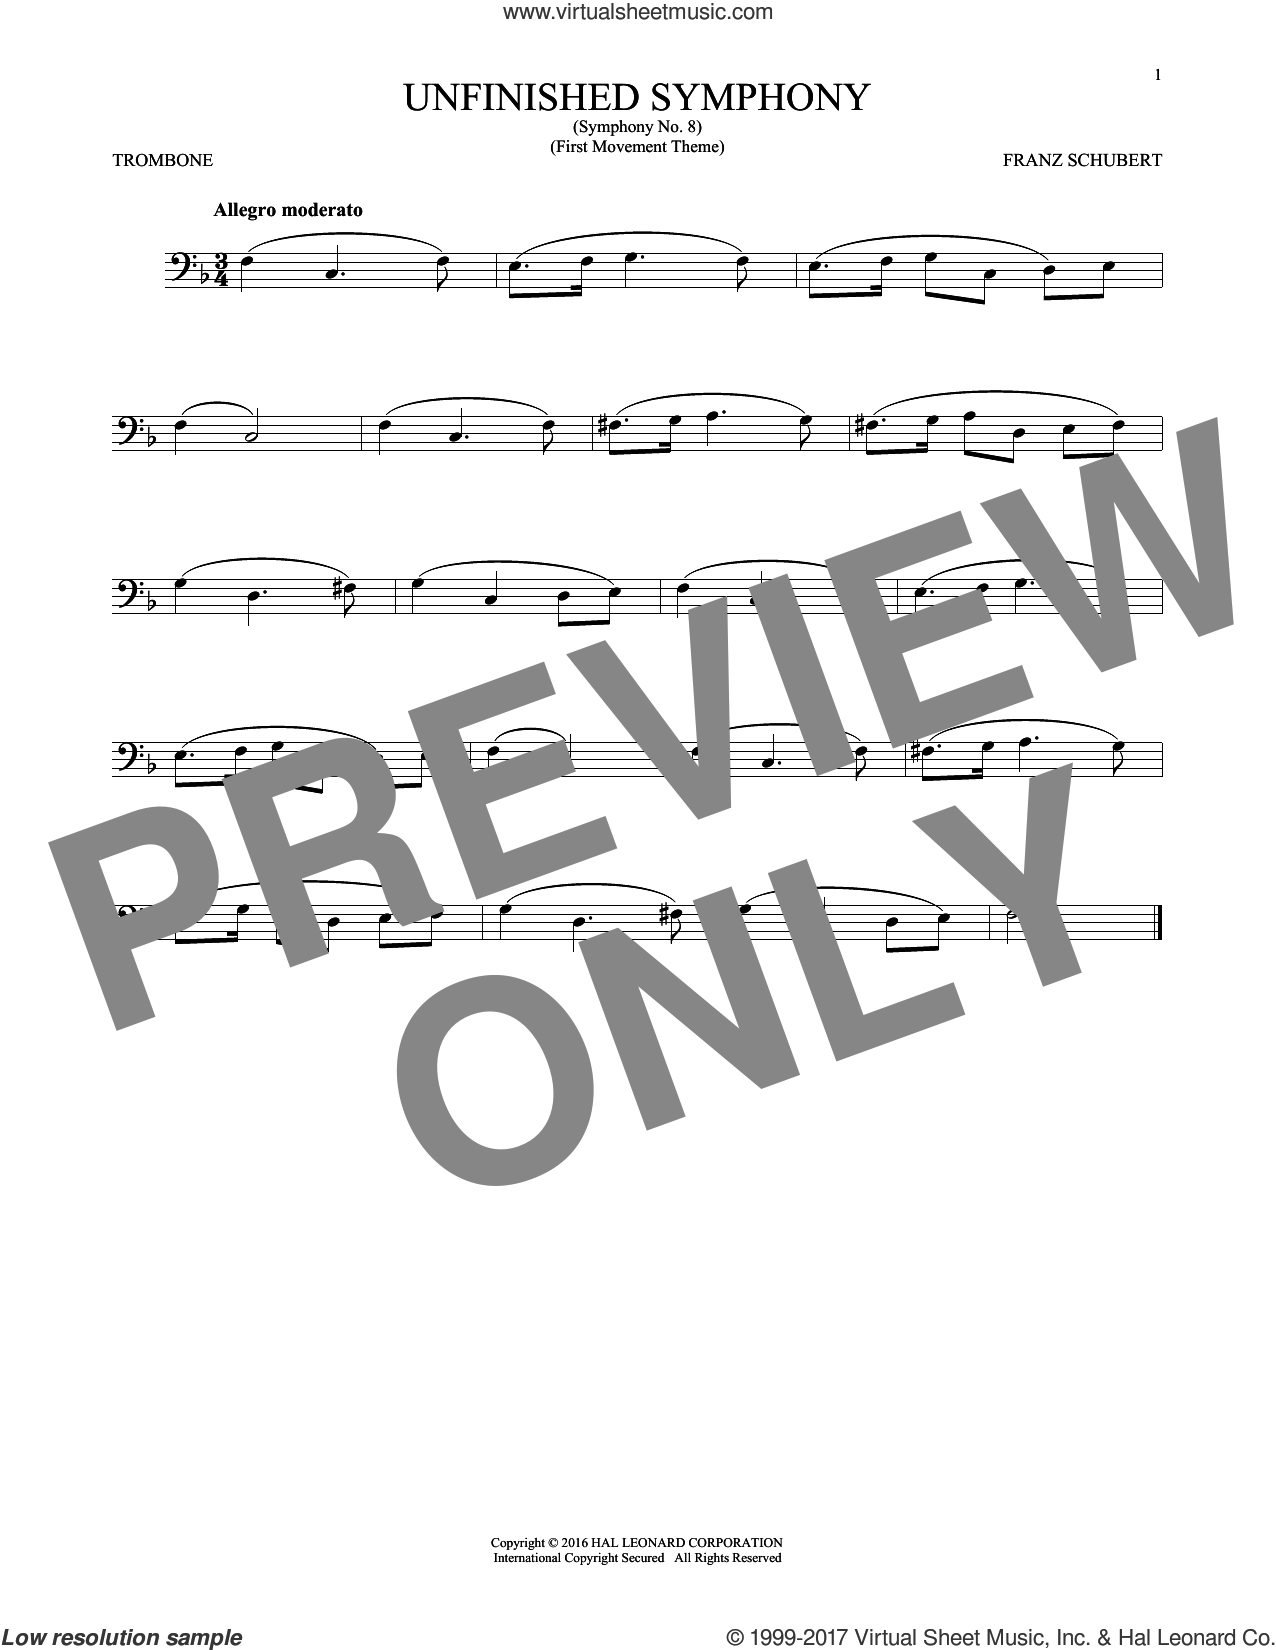 The Unfinished Symphony (Theme) sheet music for trombone solo by Franz Schubert, classical score, intermediate skill level